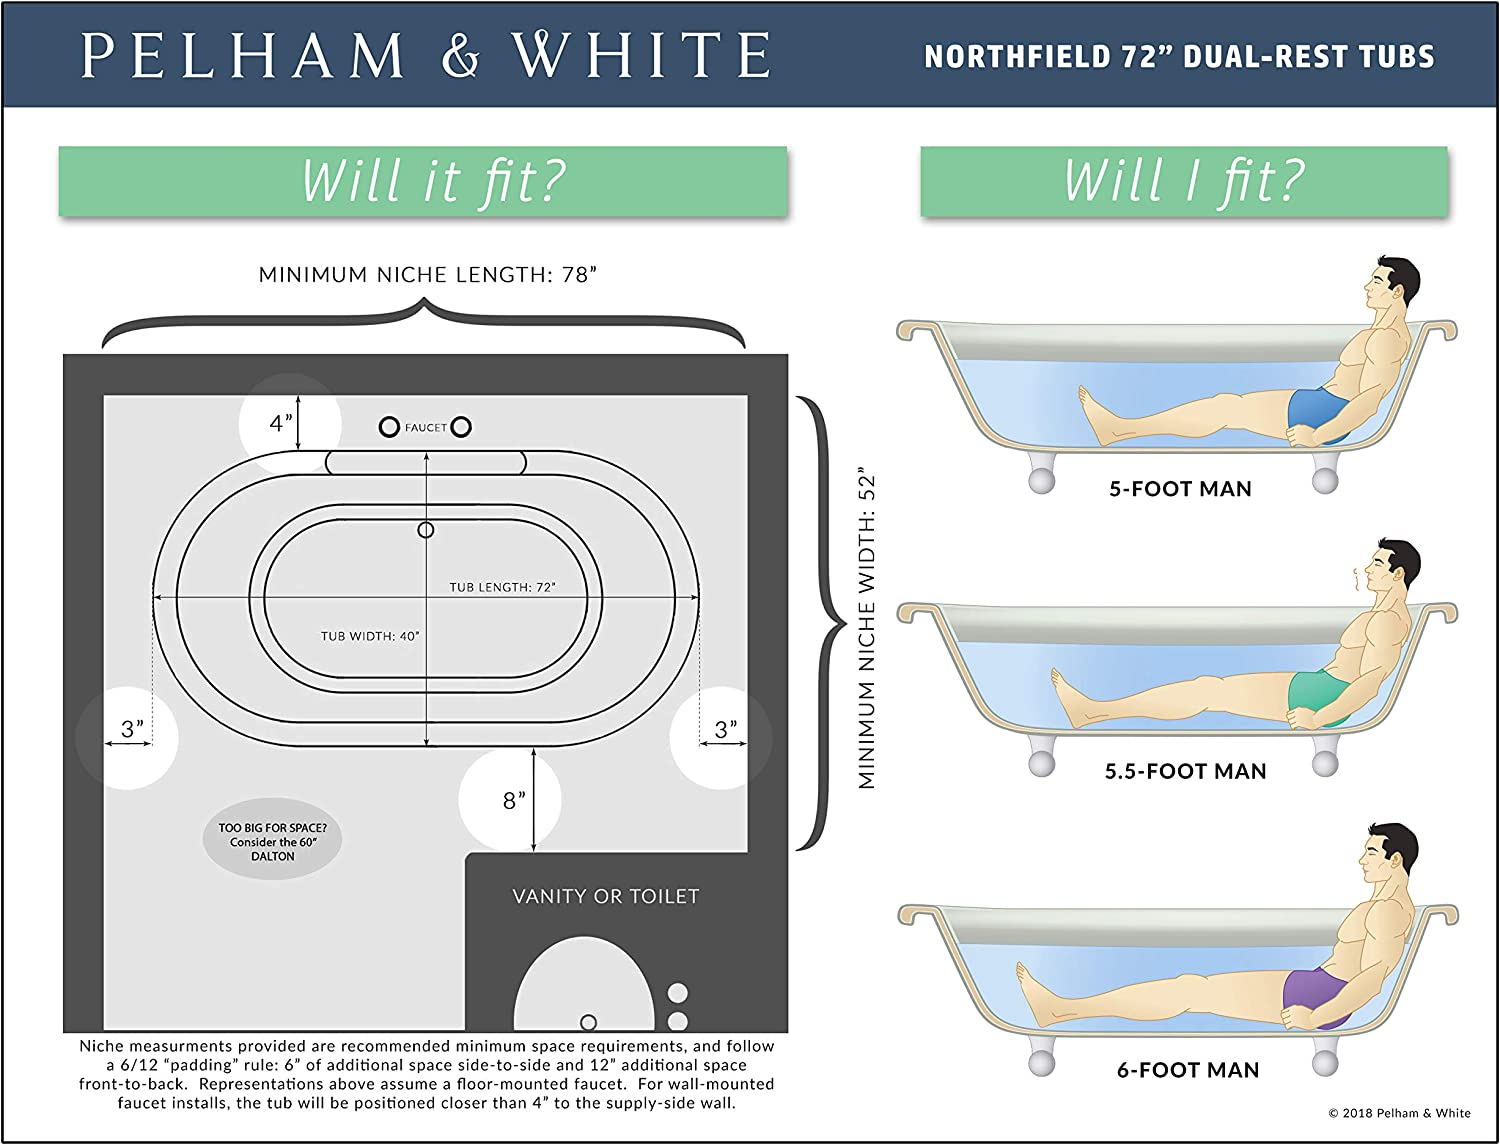 Luxury 72 Inch Clawfoot Tub With Vintage Tub Design In White Includes Cannonball Feet And Drain From The Northfield Collection Amazon Ca Tools Home Improvement